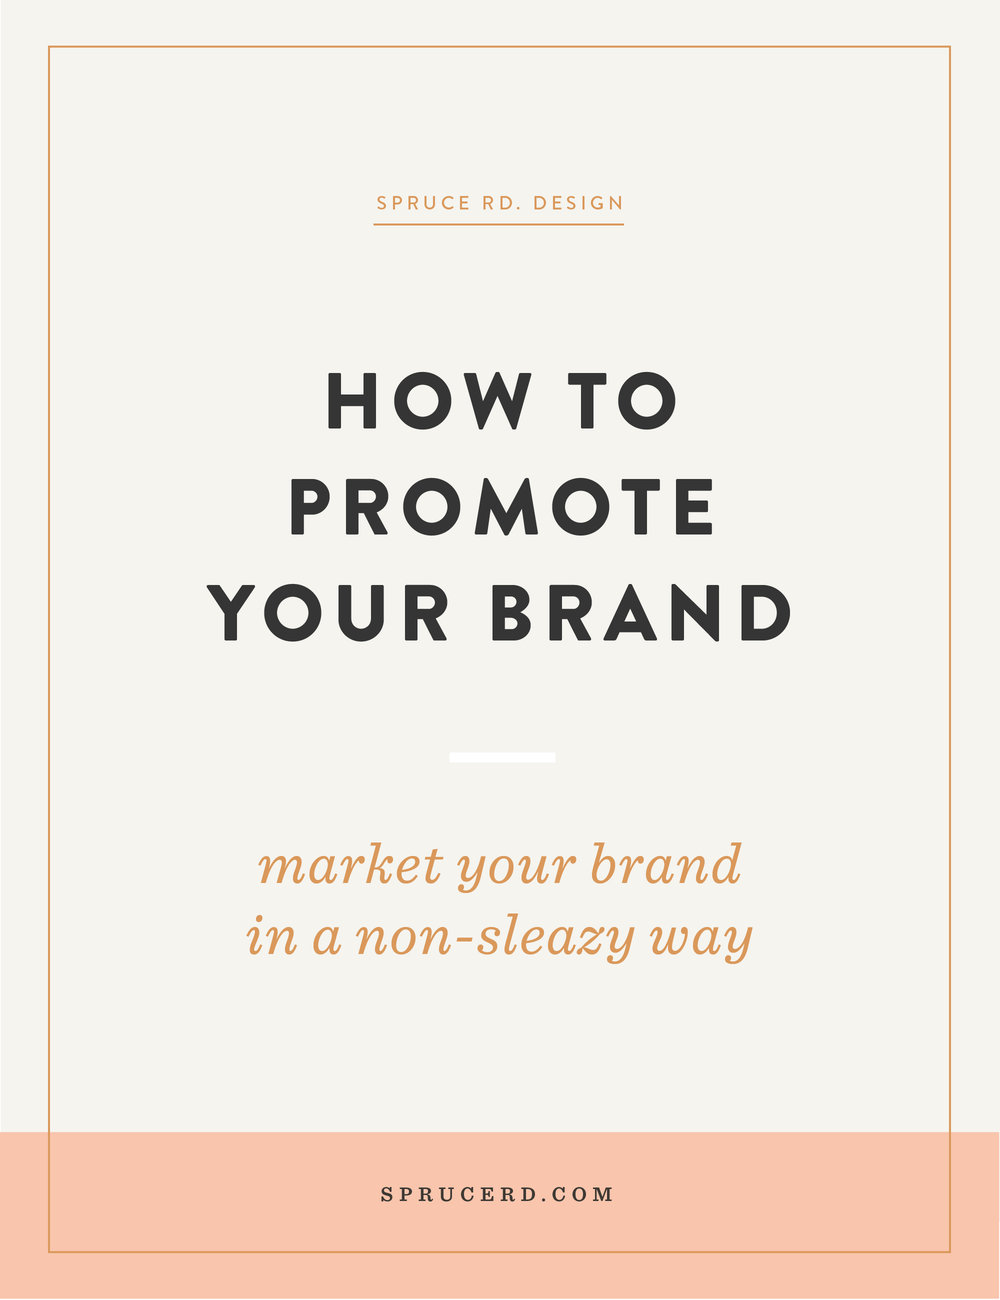 How to promote your brand | Spruce Rd. | There's one thing I've noticed when chatting with my clients and freelancer friends, it's that we struggle with how to promote ourselves without feeling awkward or sleazy. I'm sharing a few ways to ease your self-promo needs, so you can get over that stumbling block and begin attracting your audience.